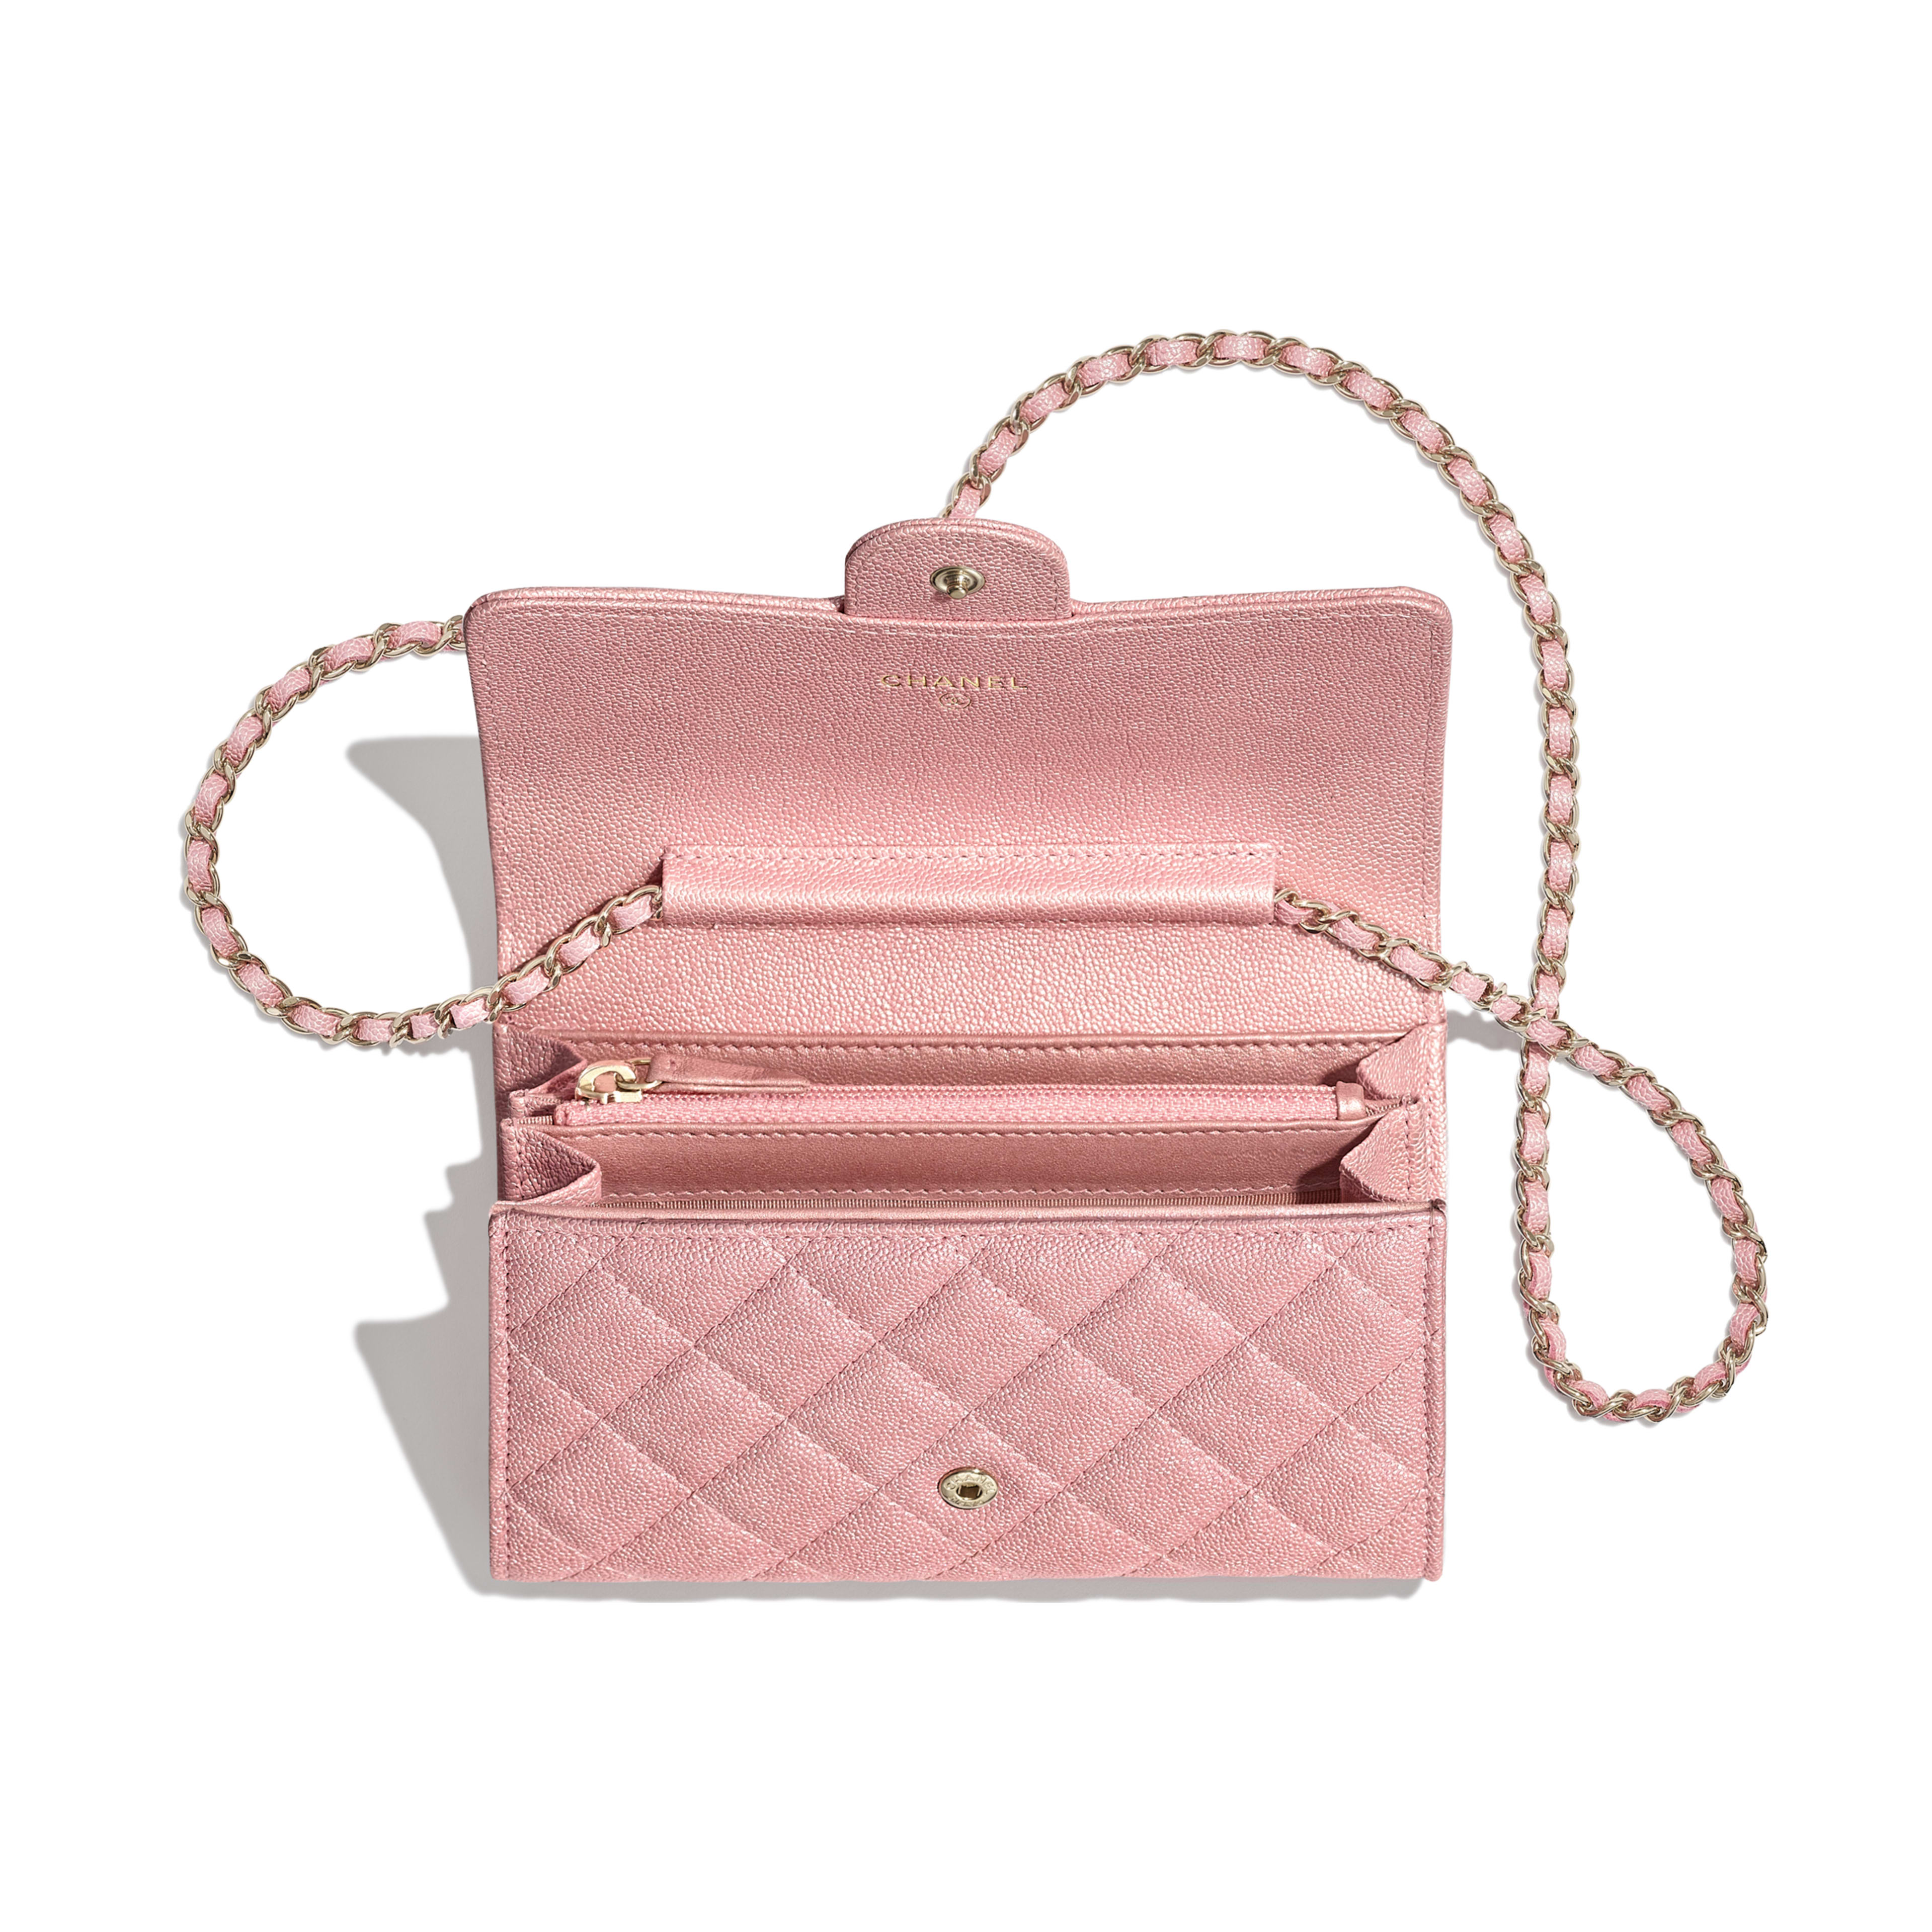 Classic Clutch with Chain - Pink - Iridescent Grained Calfskin & Gold-Tone Metal - Other view - see full sized version